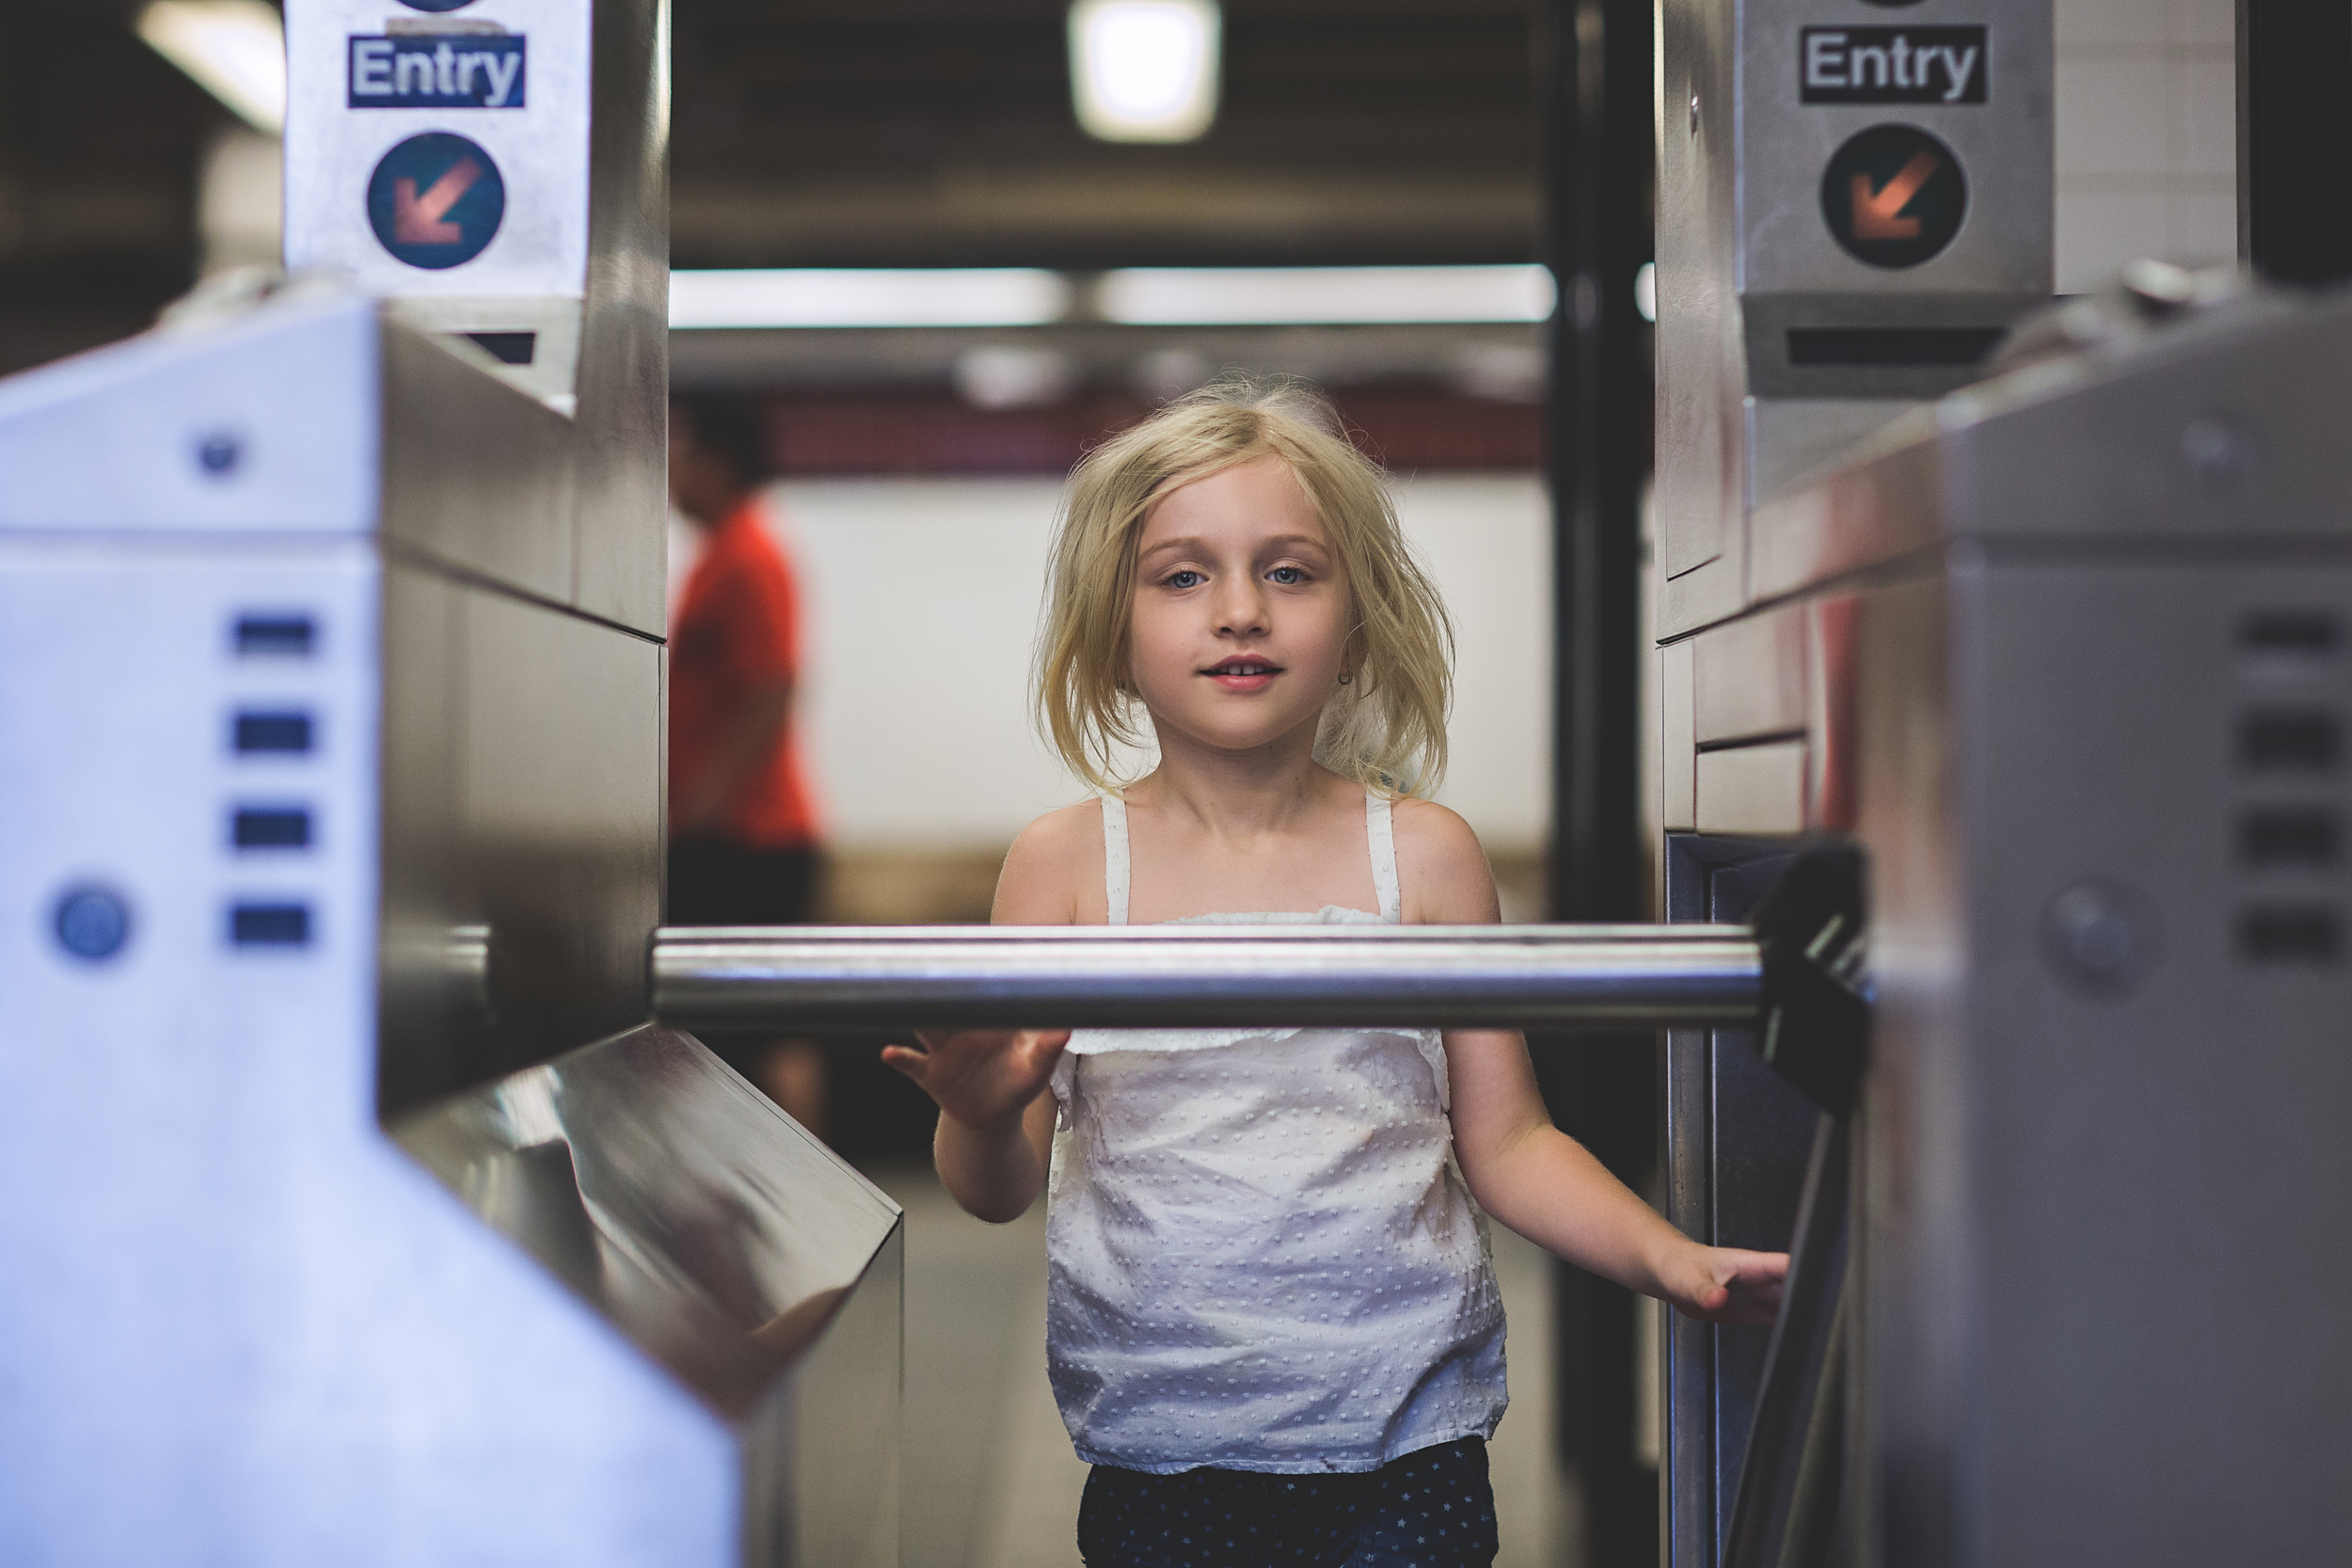 Hello-olivia-photography-long-lsland-family-children-documentary-photographer-subway-mta-manhattan-bound